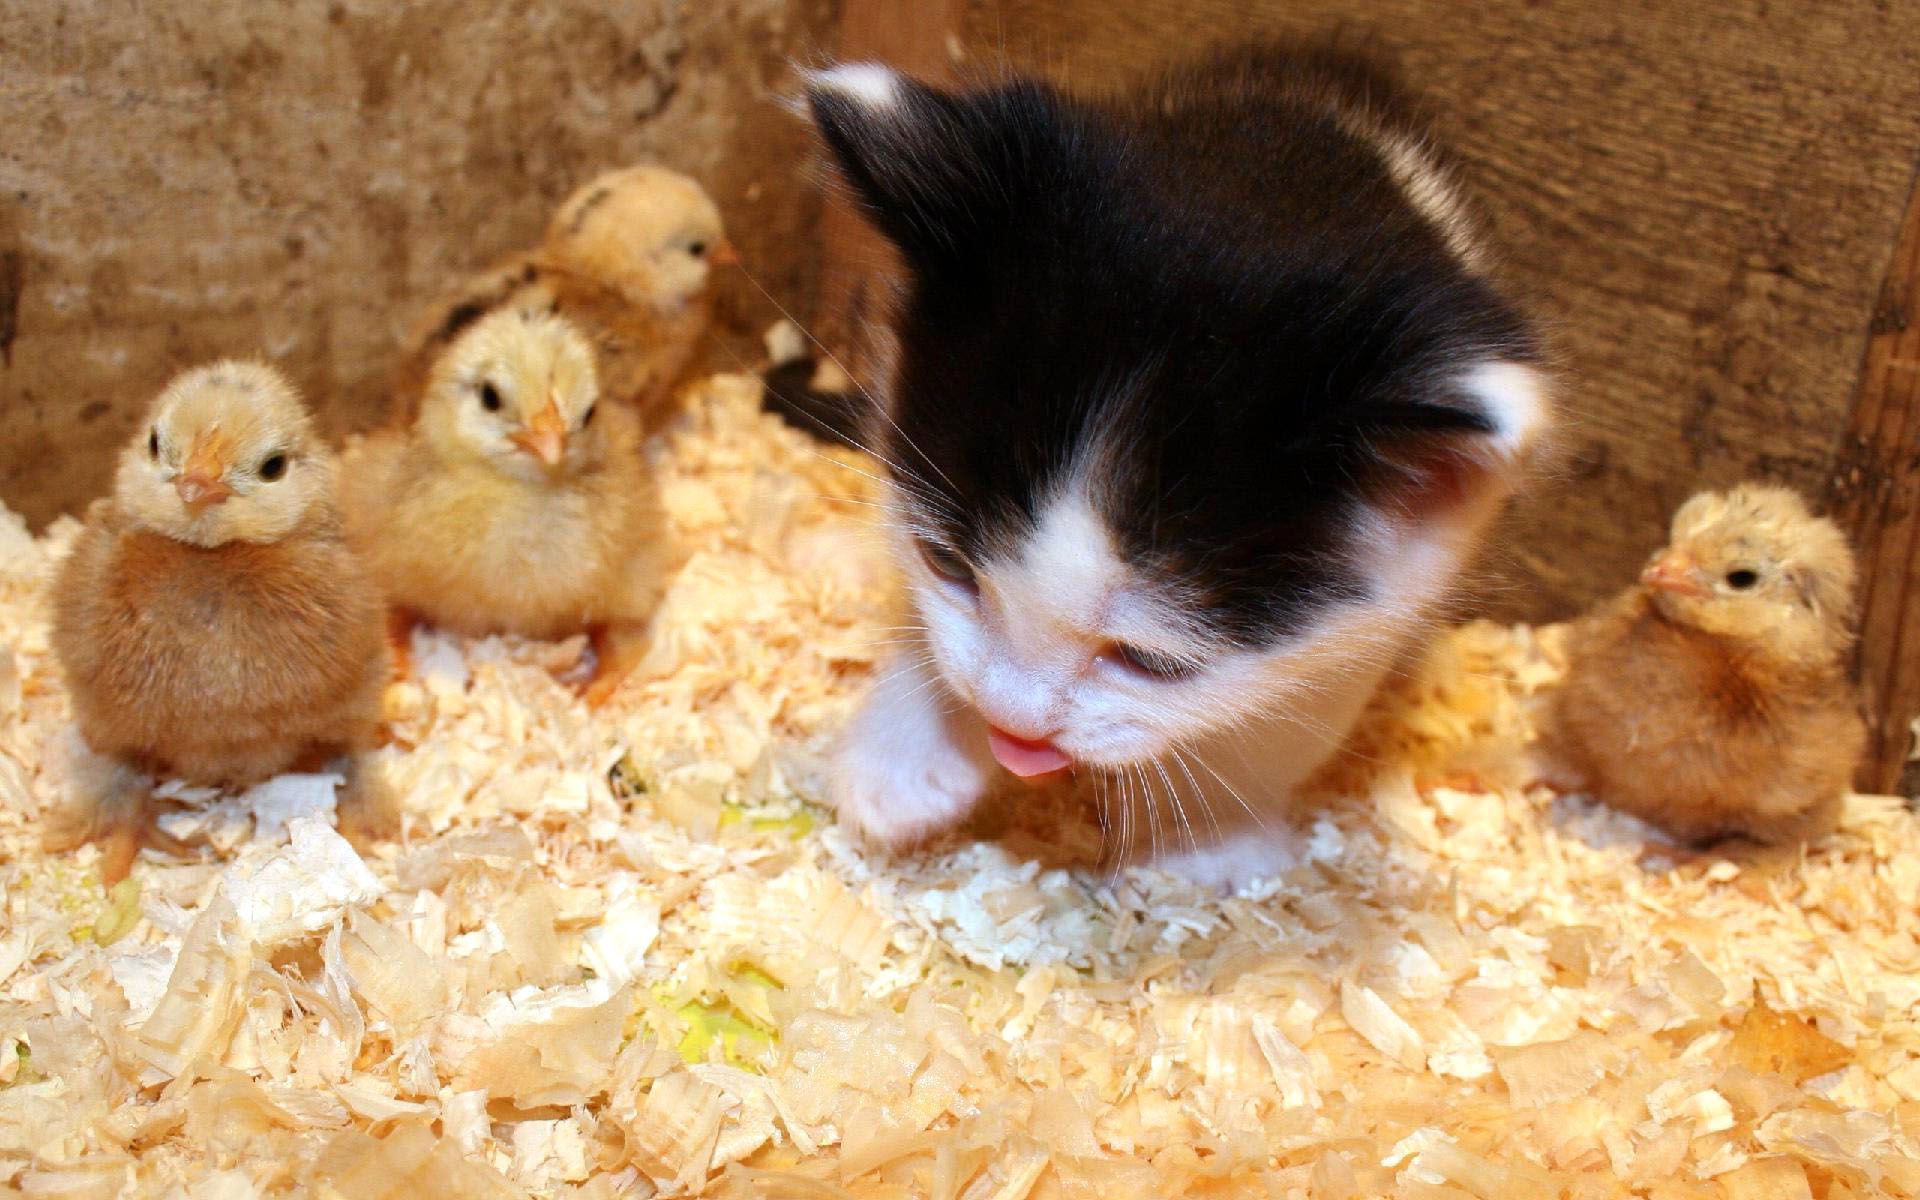 Baby Cat With Baby Ducks   Simply Wallpaper - Just choose and download